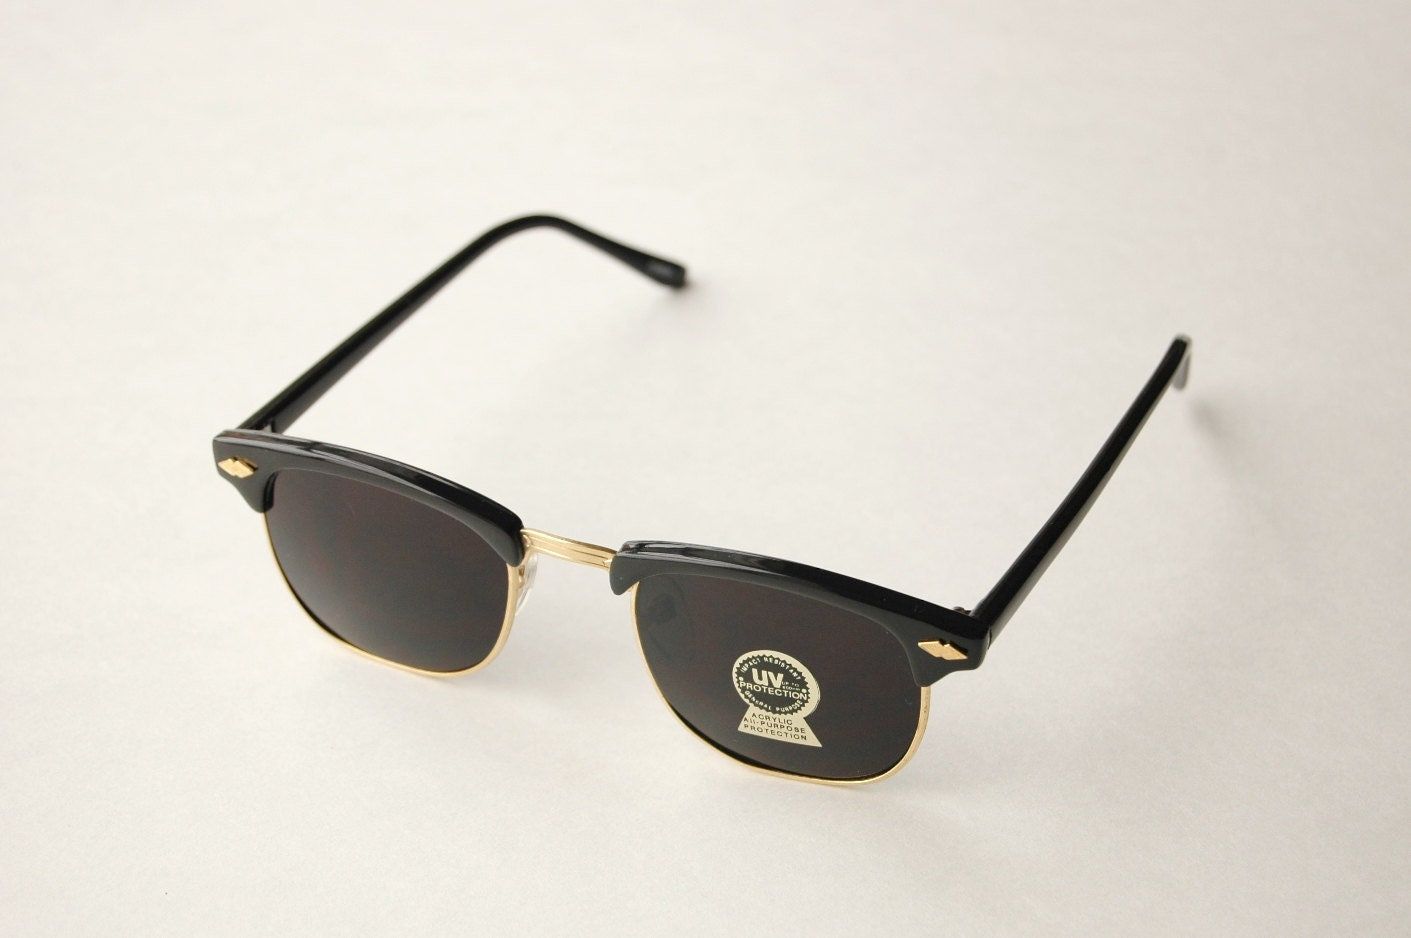 Men's black and gold vintage clubmaster sunglasses M71a